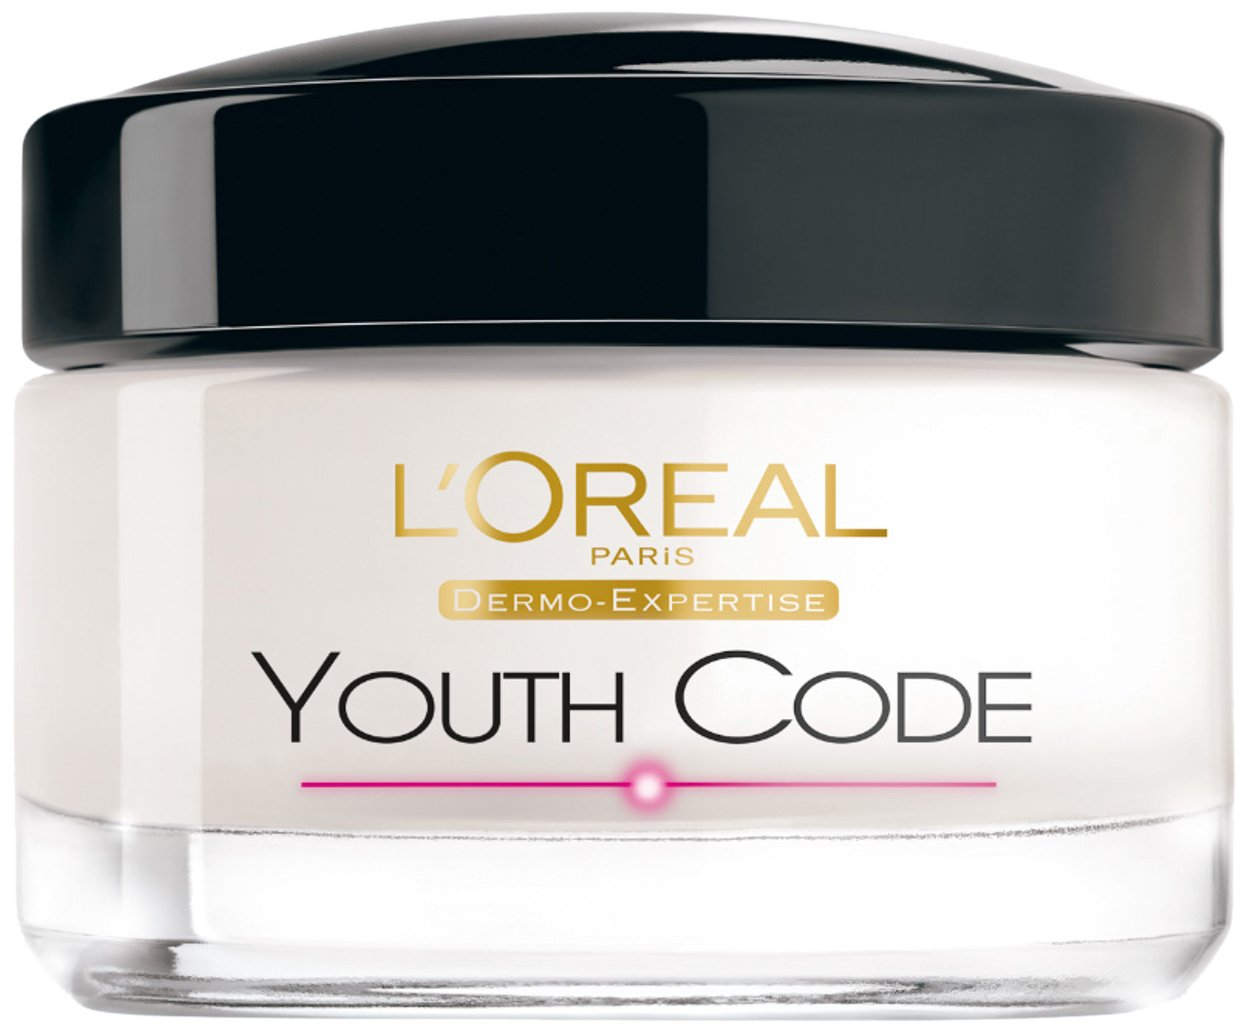 L'Oreal Paris Dermo Expertise Youth Code Eye Cream, 15ml: Amazon ...